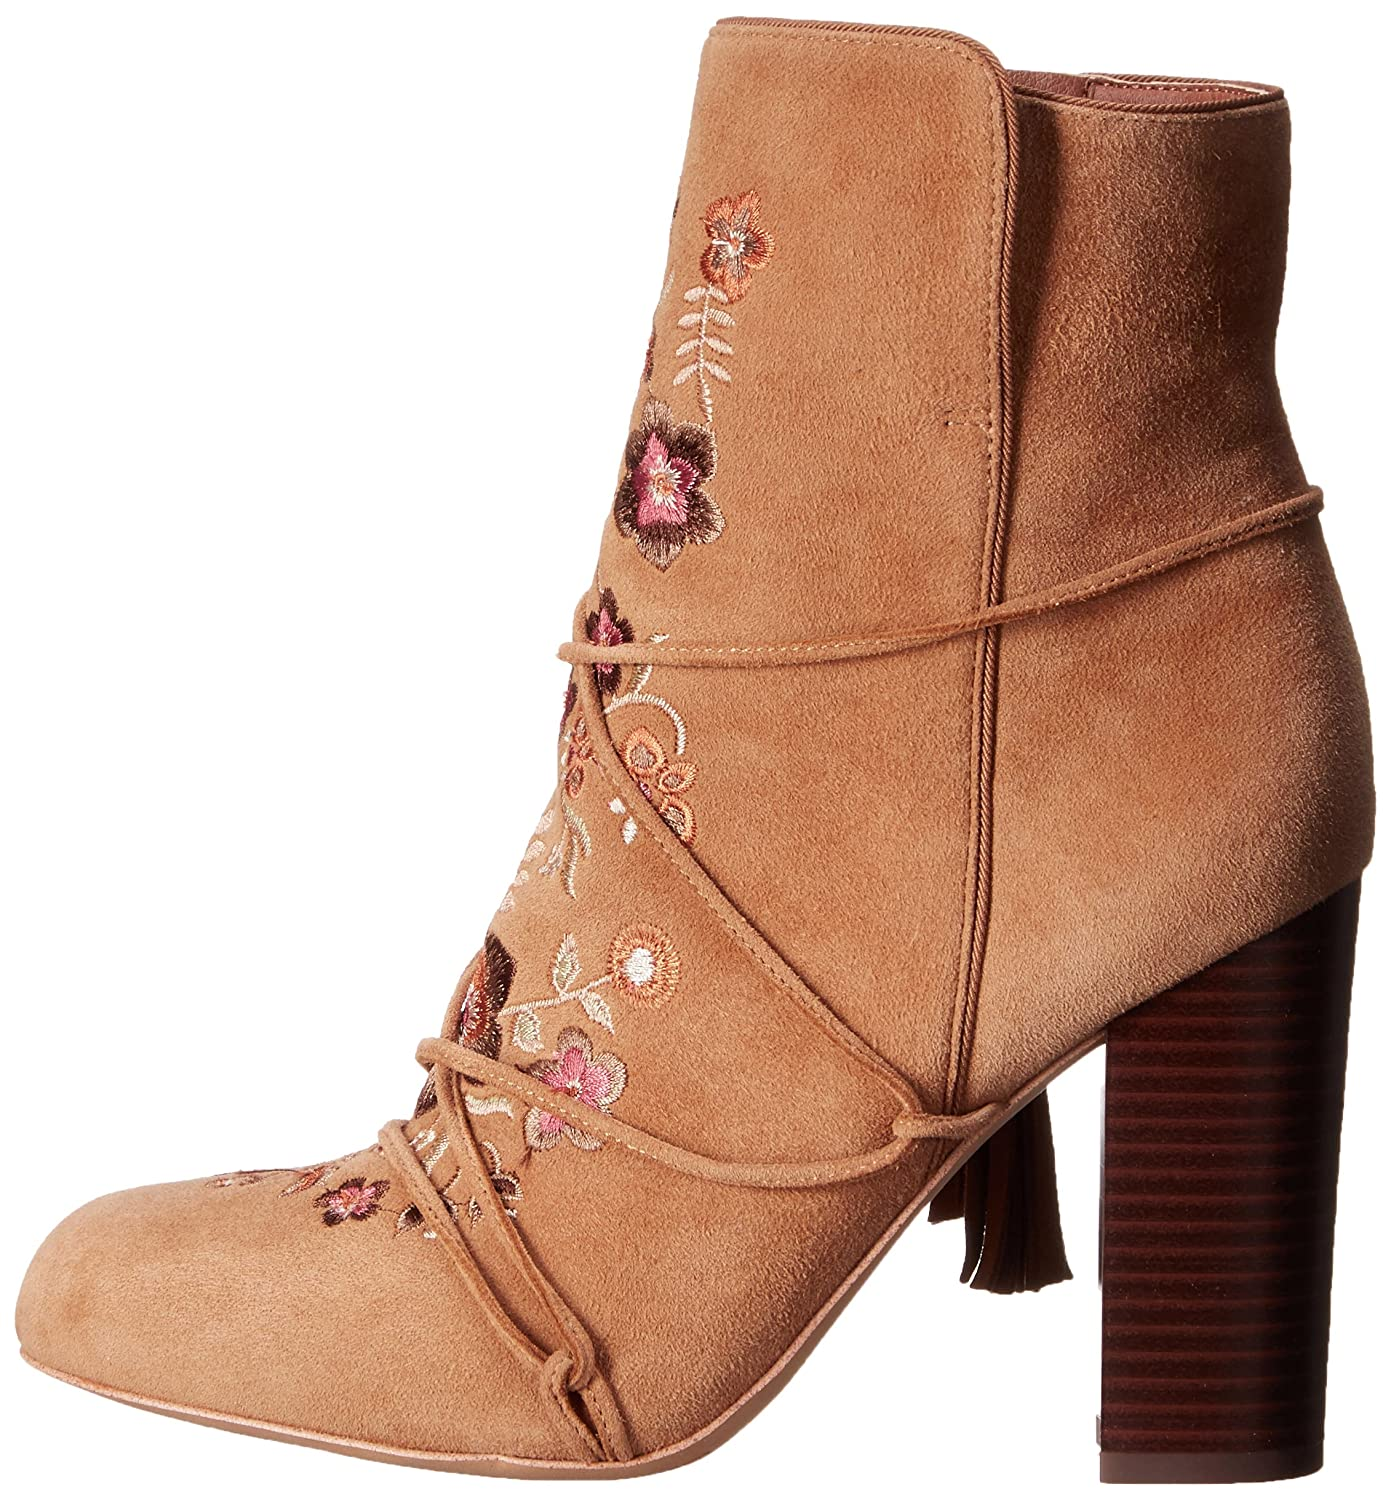 12a4fcff9 Sam Edelman Women s Winnie Boot  Buy Online at Low Prices in India -  Amazon.in